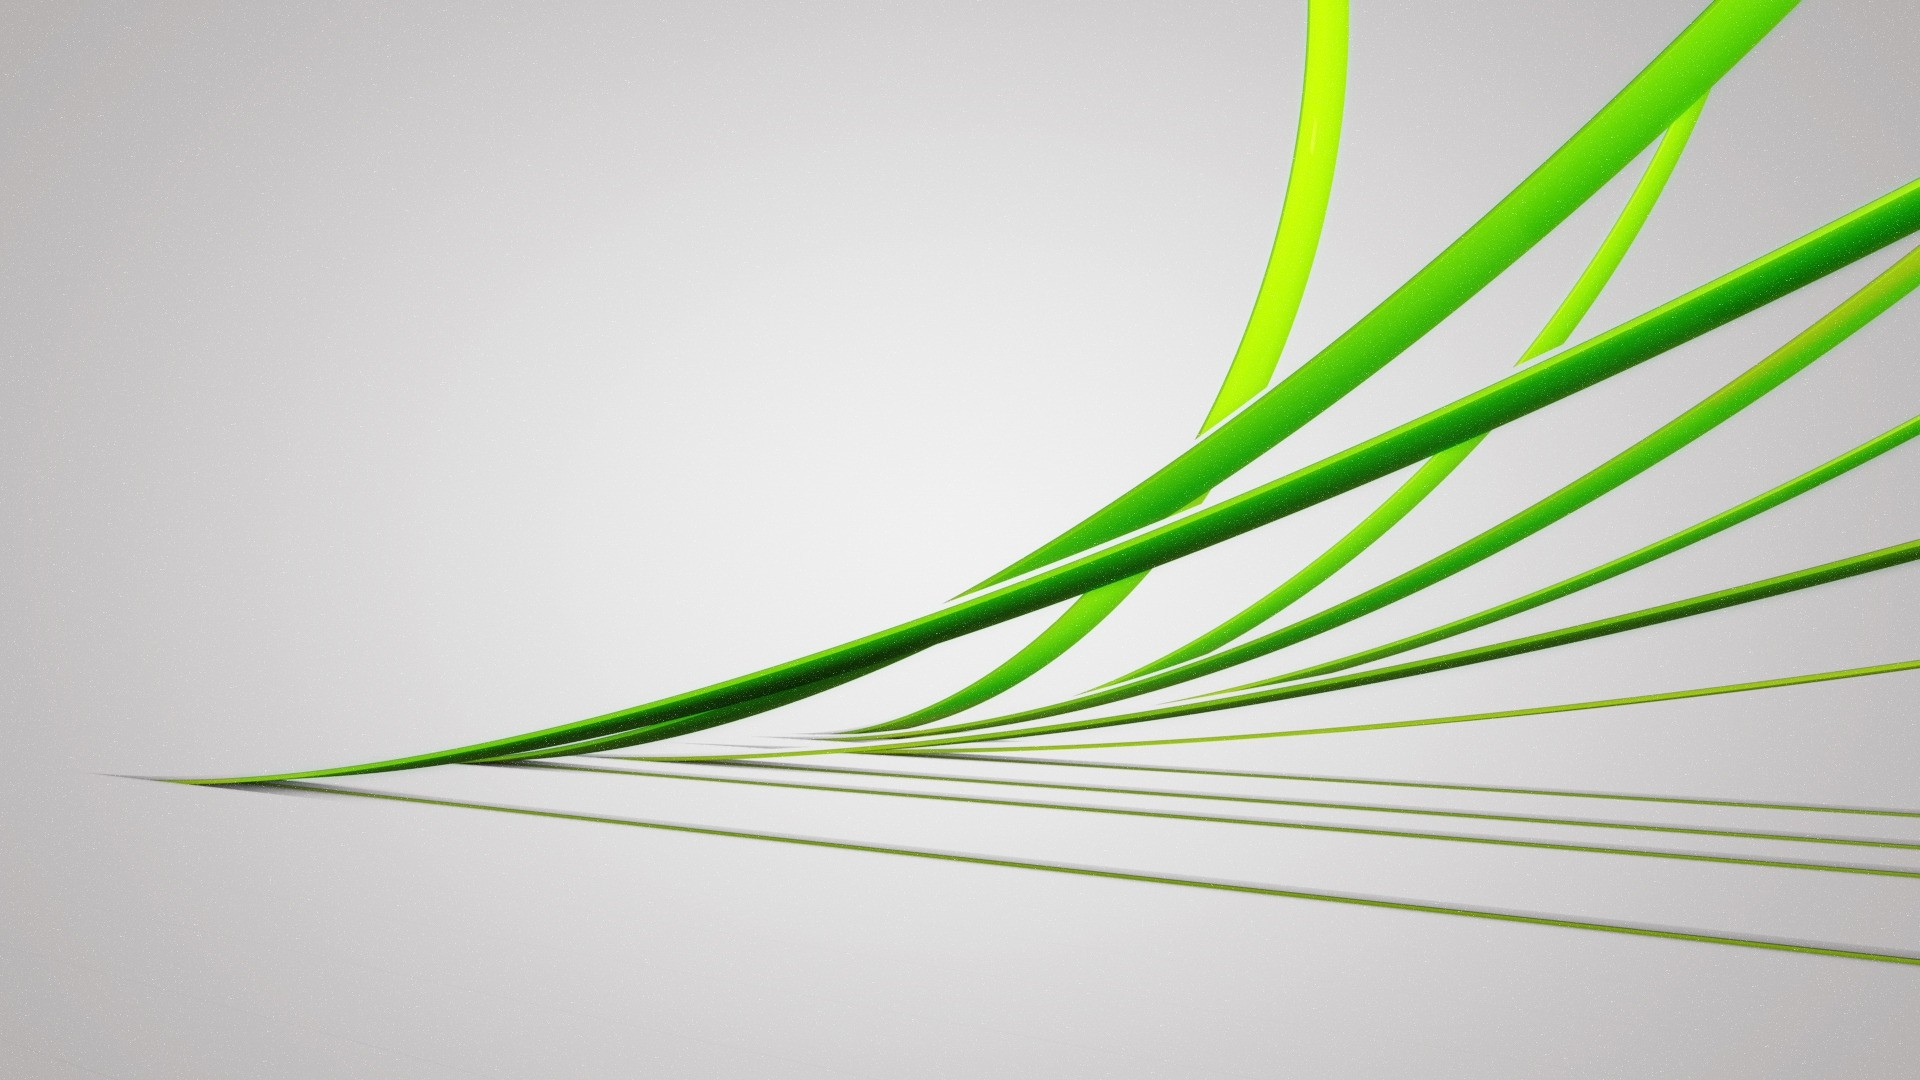 Spark Green Picture